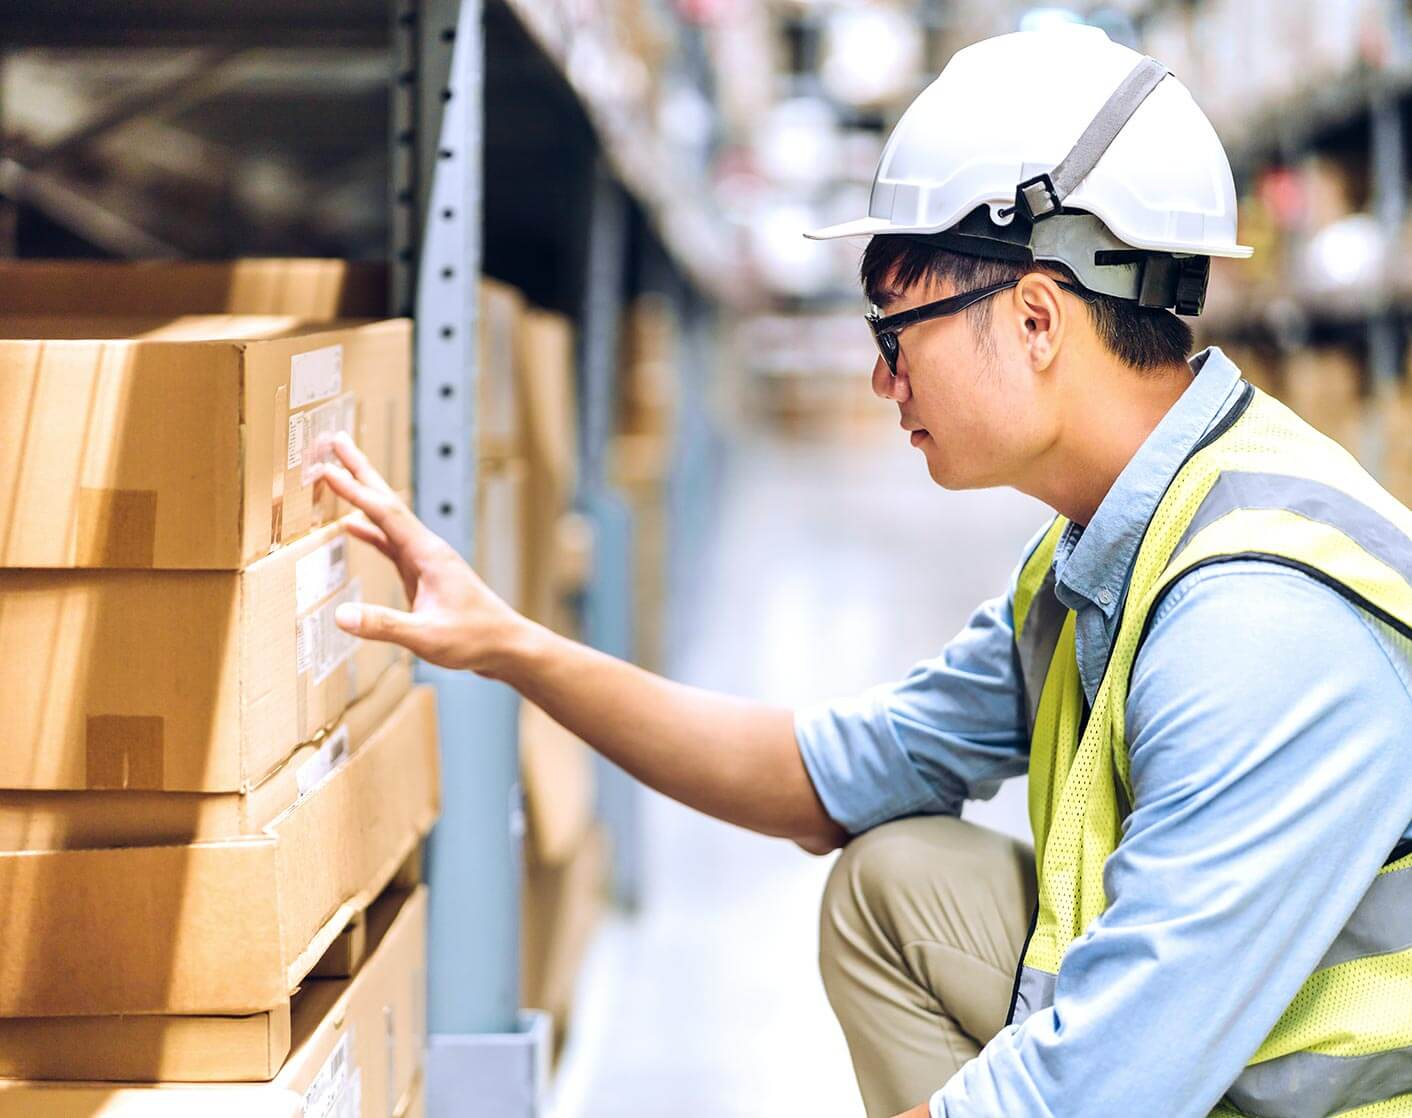 Asian man with hard hat and safety vest looking at packages on warehouse shelf